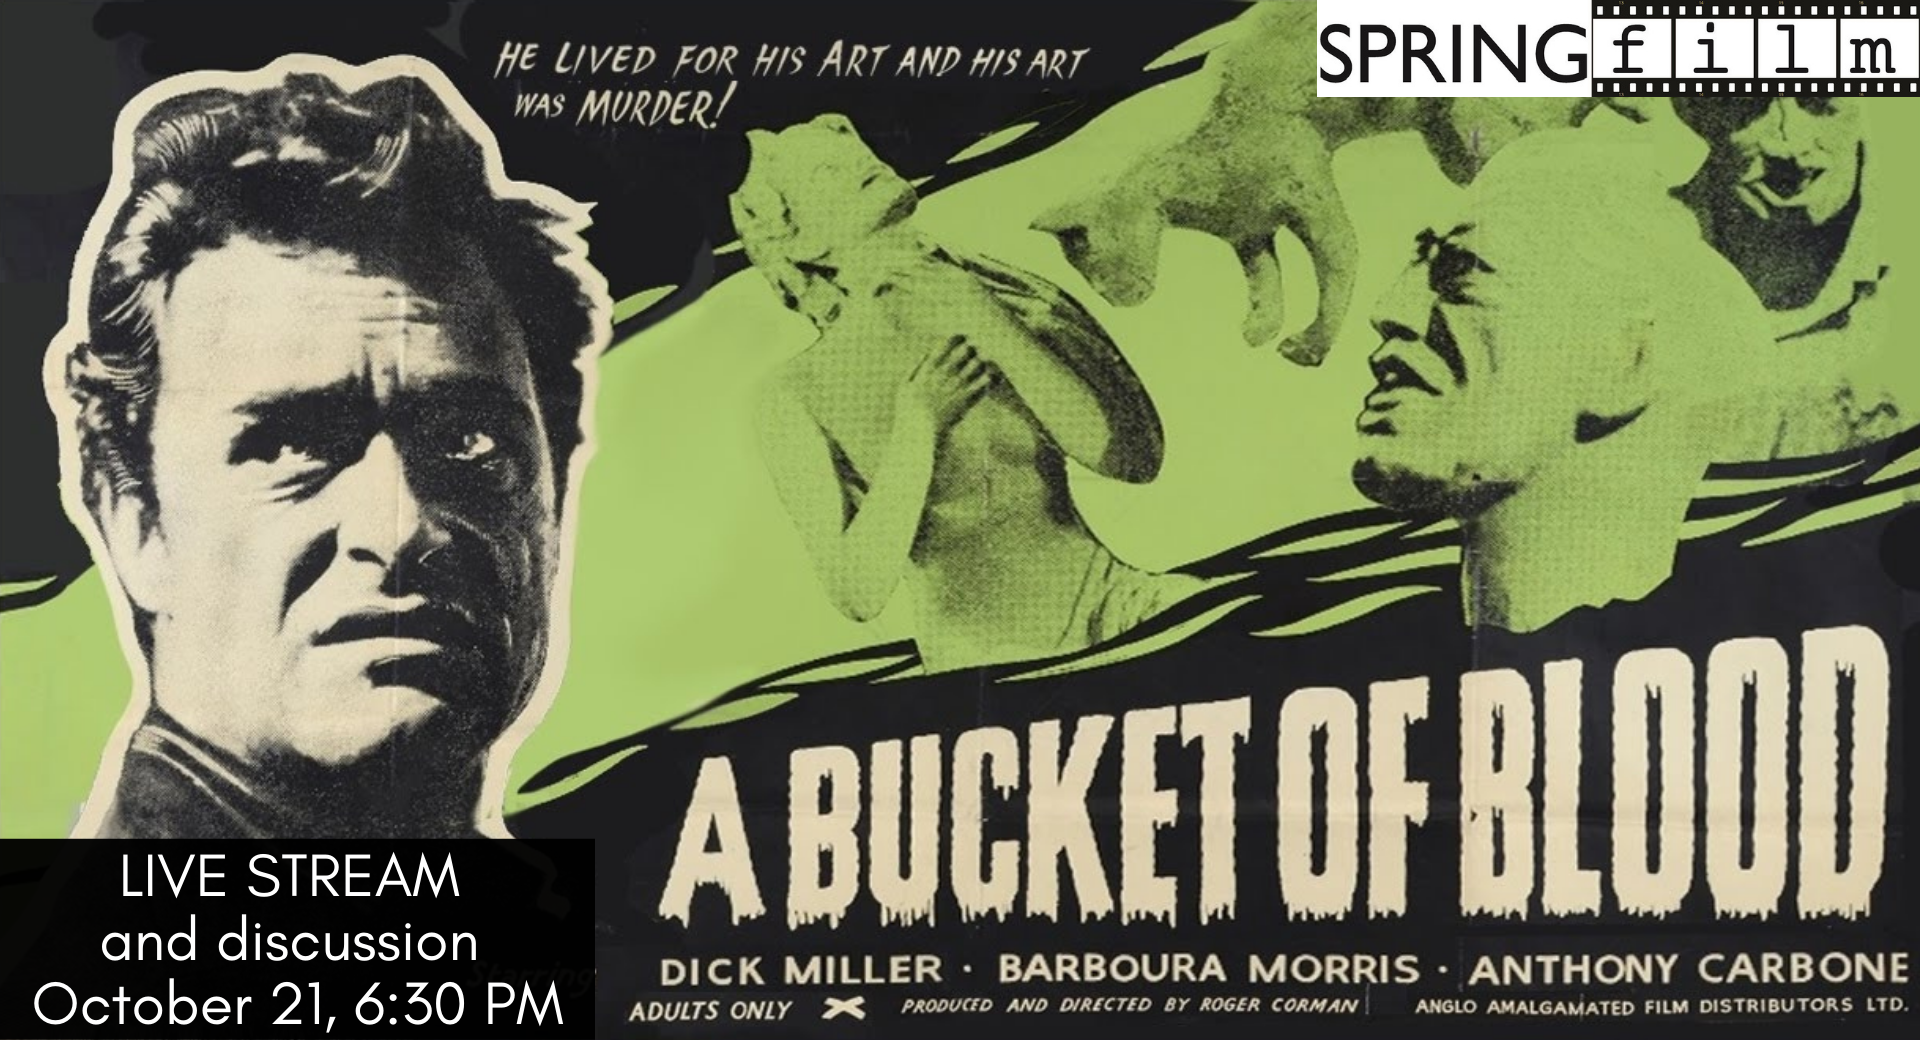 A1n original film poster for the movie 'A Bucket of Blood' with library information superimposed on top.